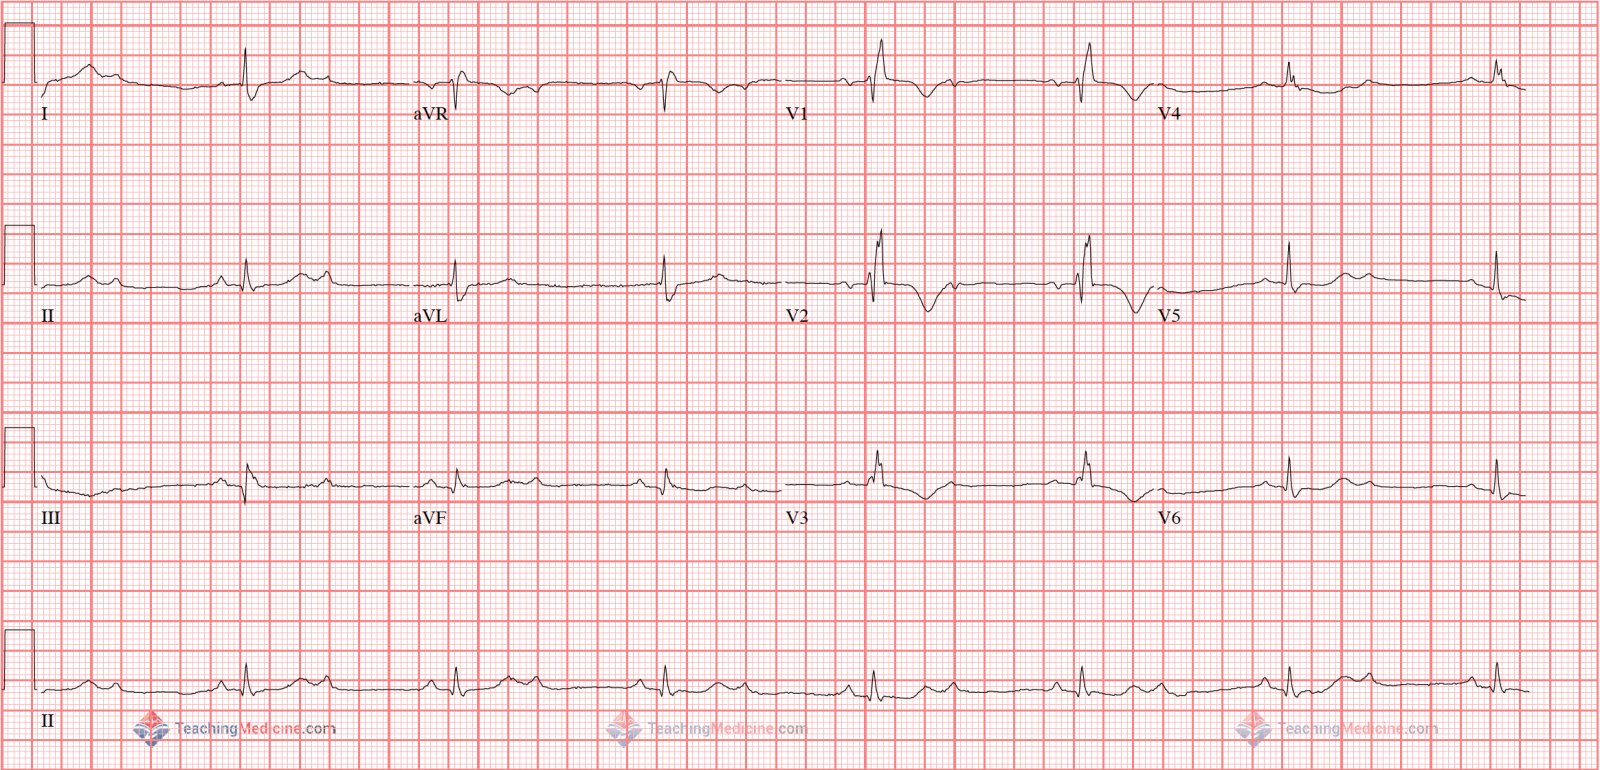 Image result for 2nd degree type 2 heart block 12 lead ecg